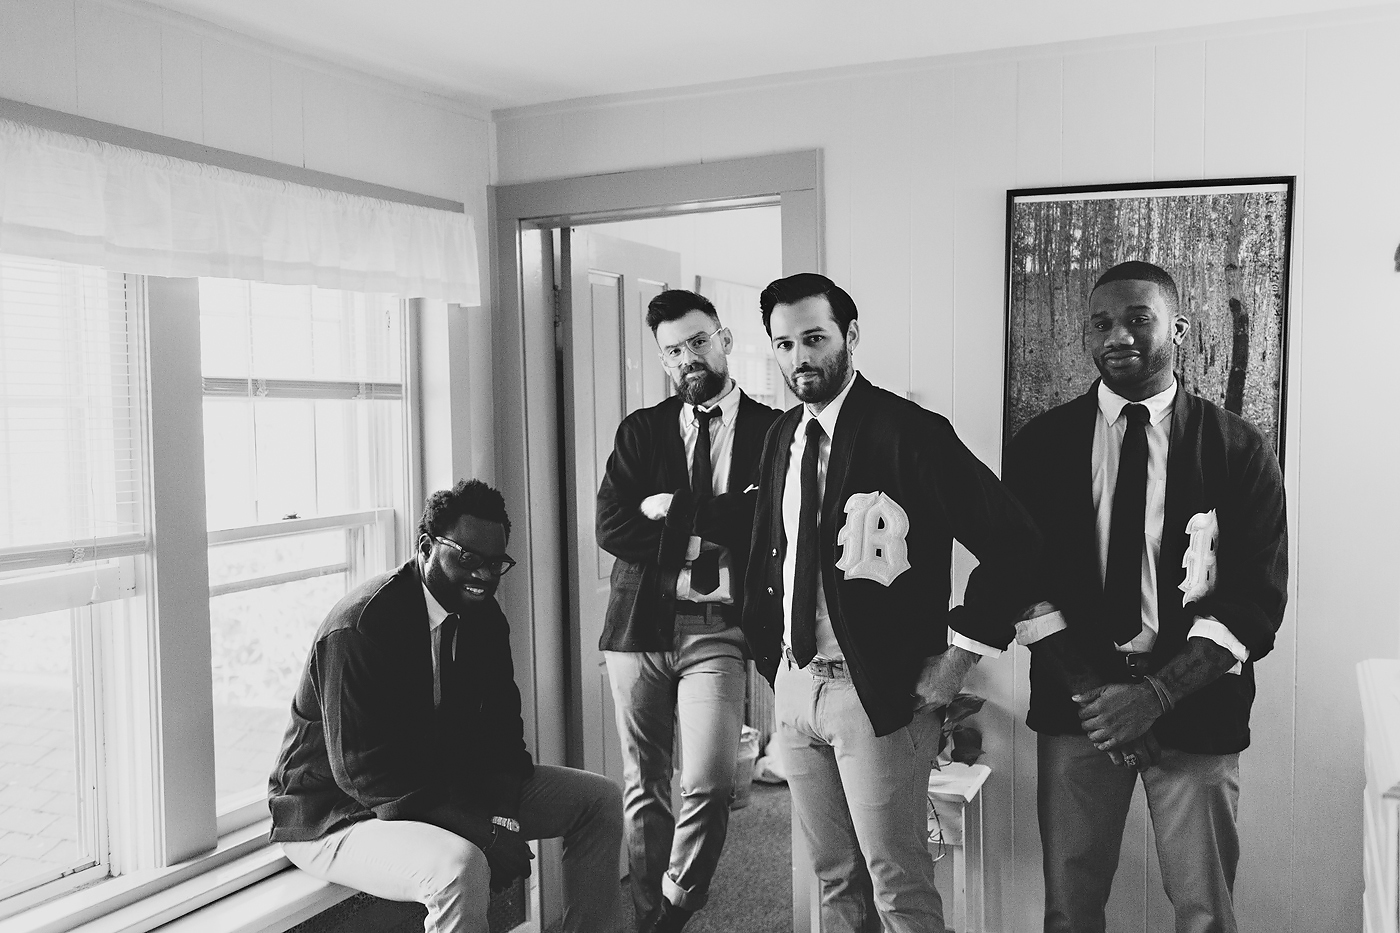 Groomsmen dressed at Fullmoon Resort in New York